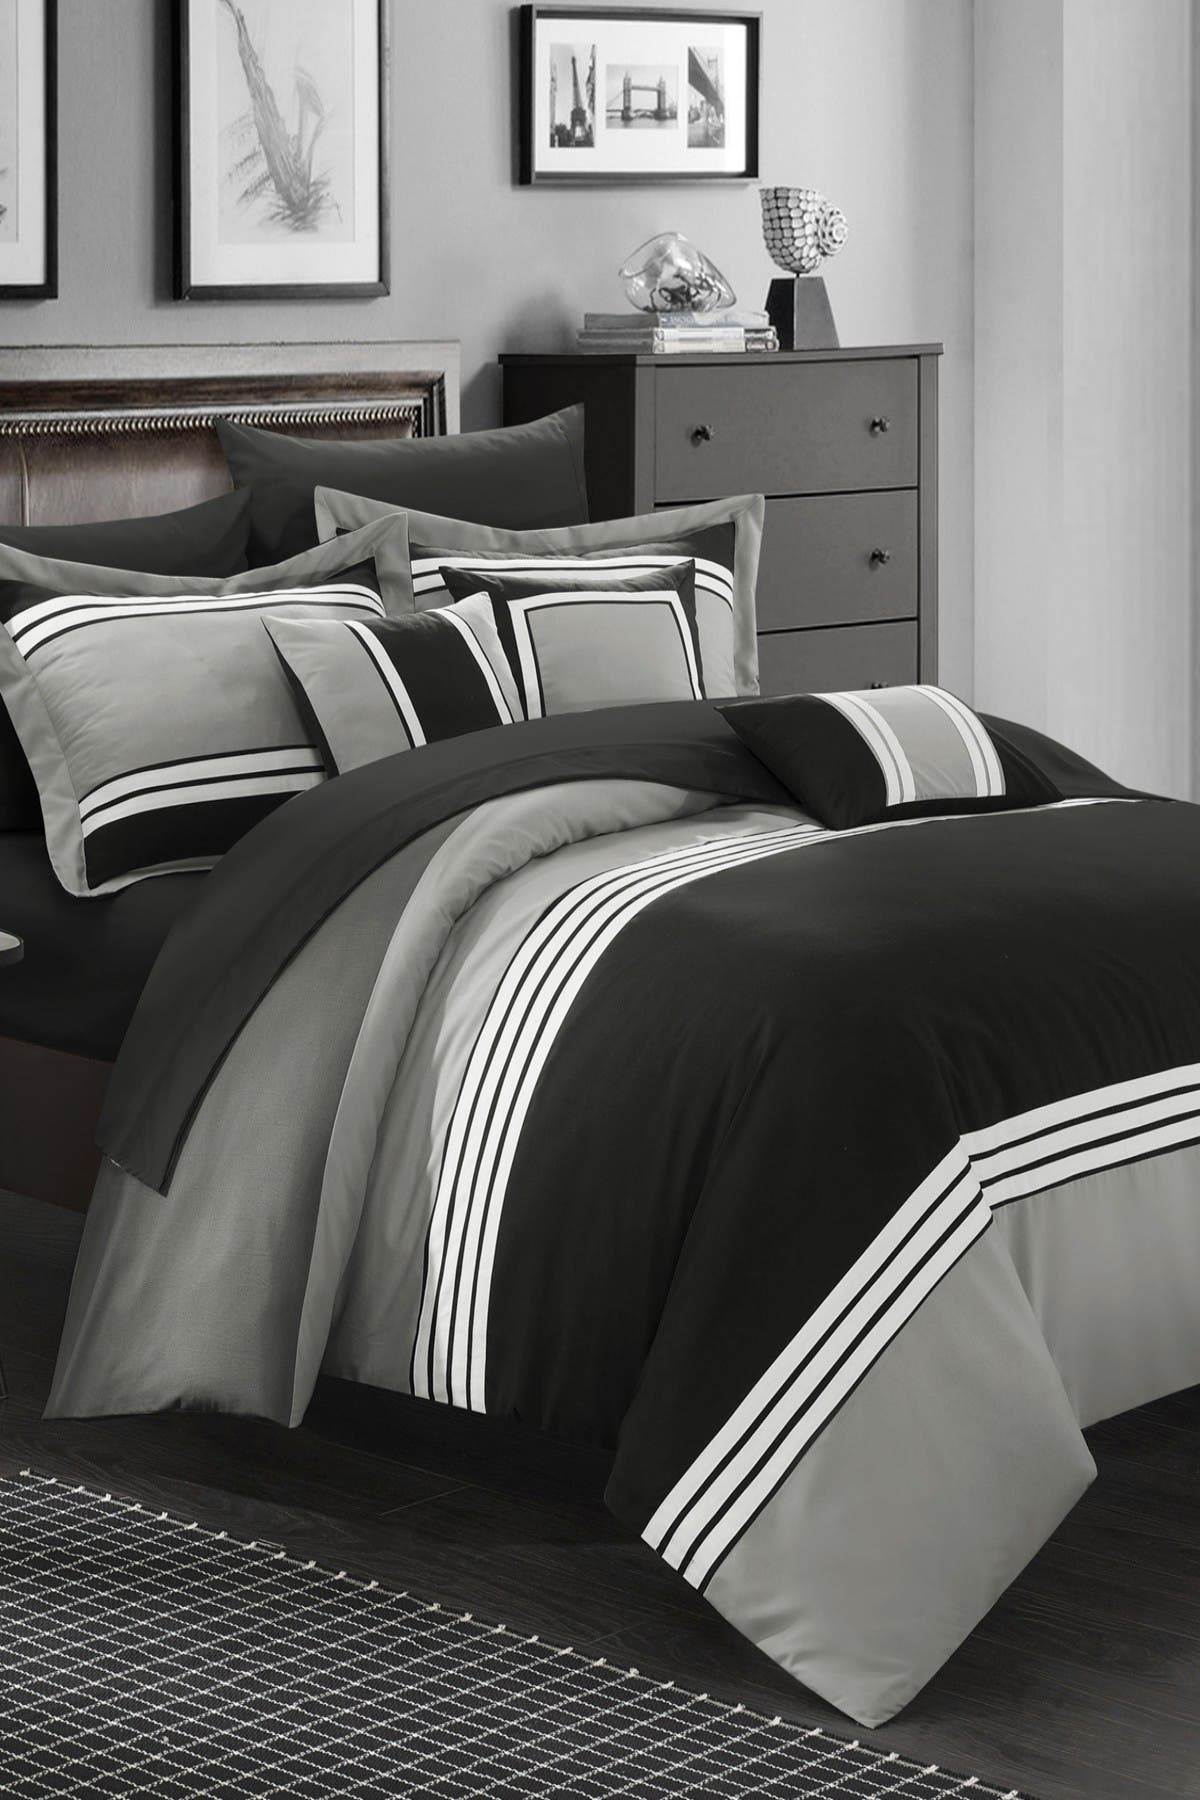 Chic Home Bedding Black Karsa Hotel Collection Bed In A Bag Queen 10 Piece Comforter Set Nordstrom Rack